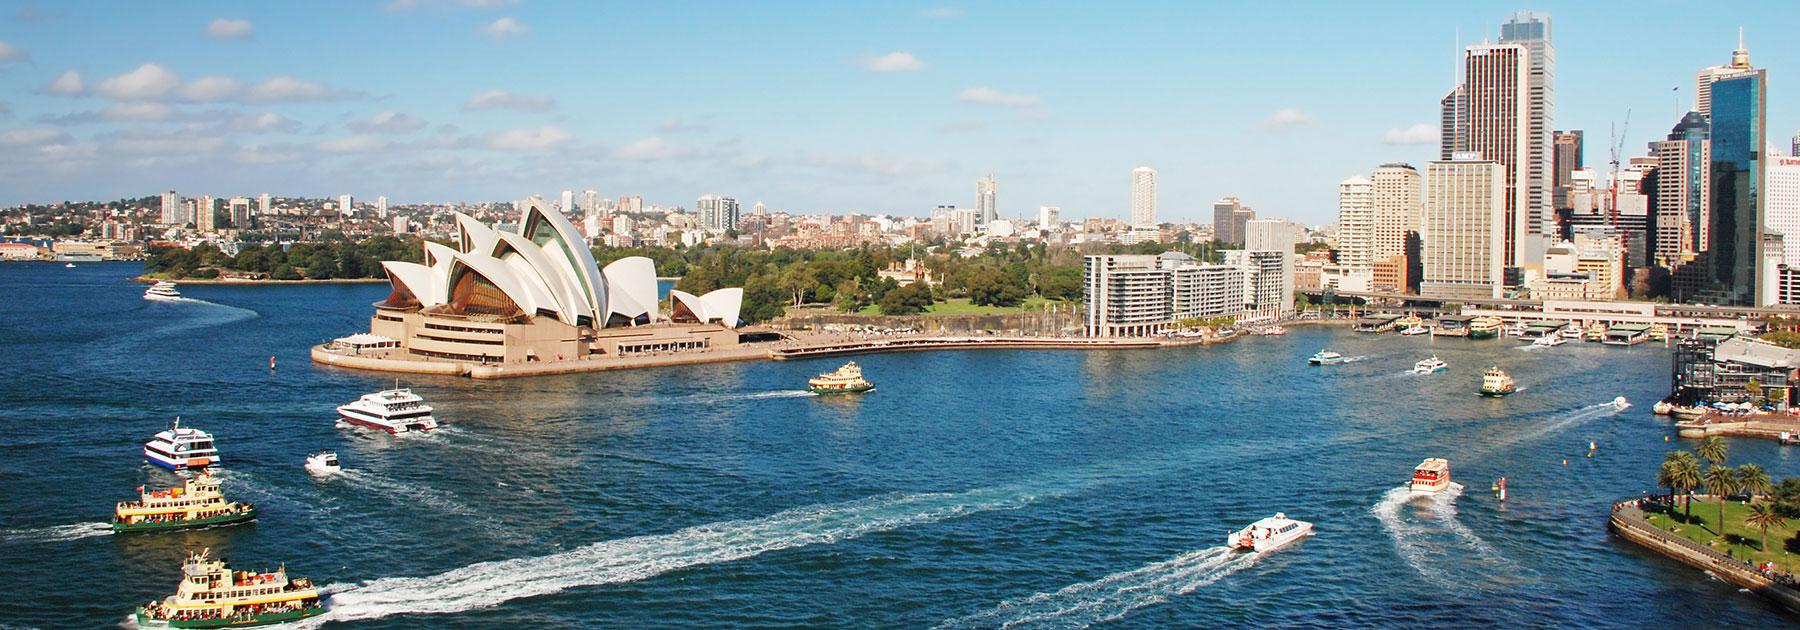 Australia Vacations with Airfare | Trip to Australia from